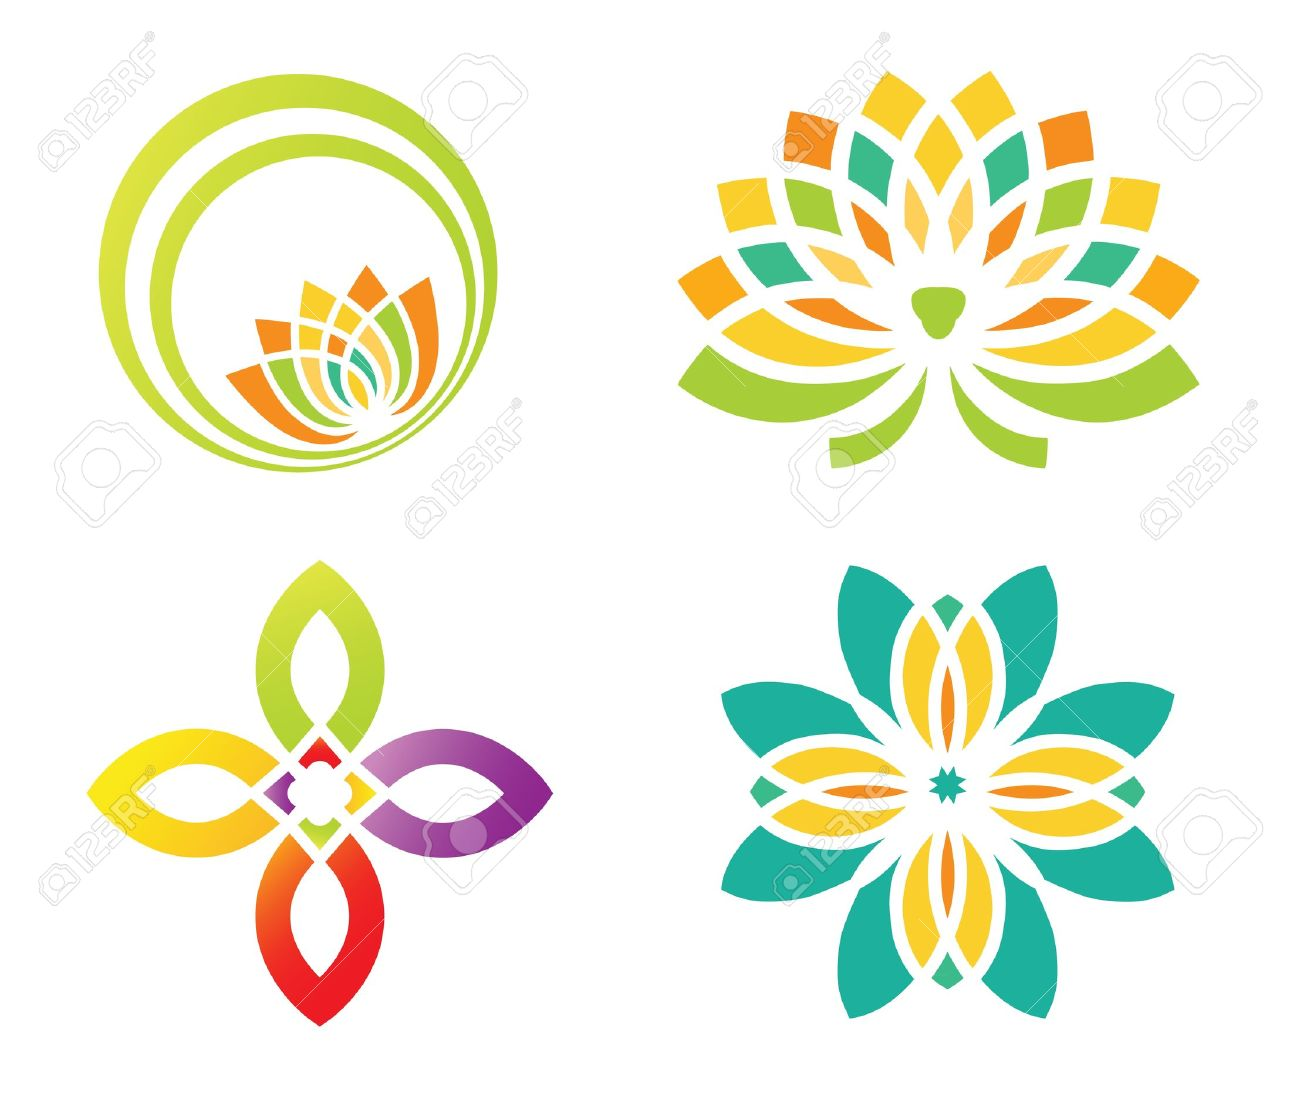 abstract floral design for logo designing royalty free cliparts